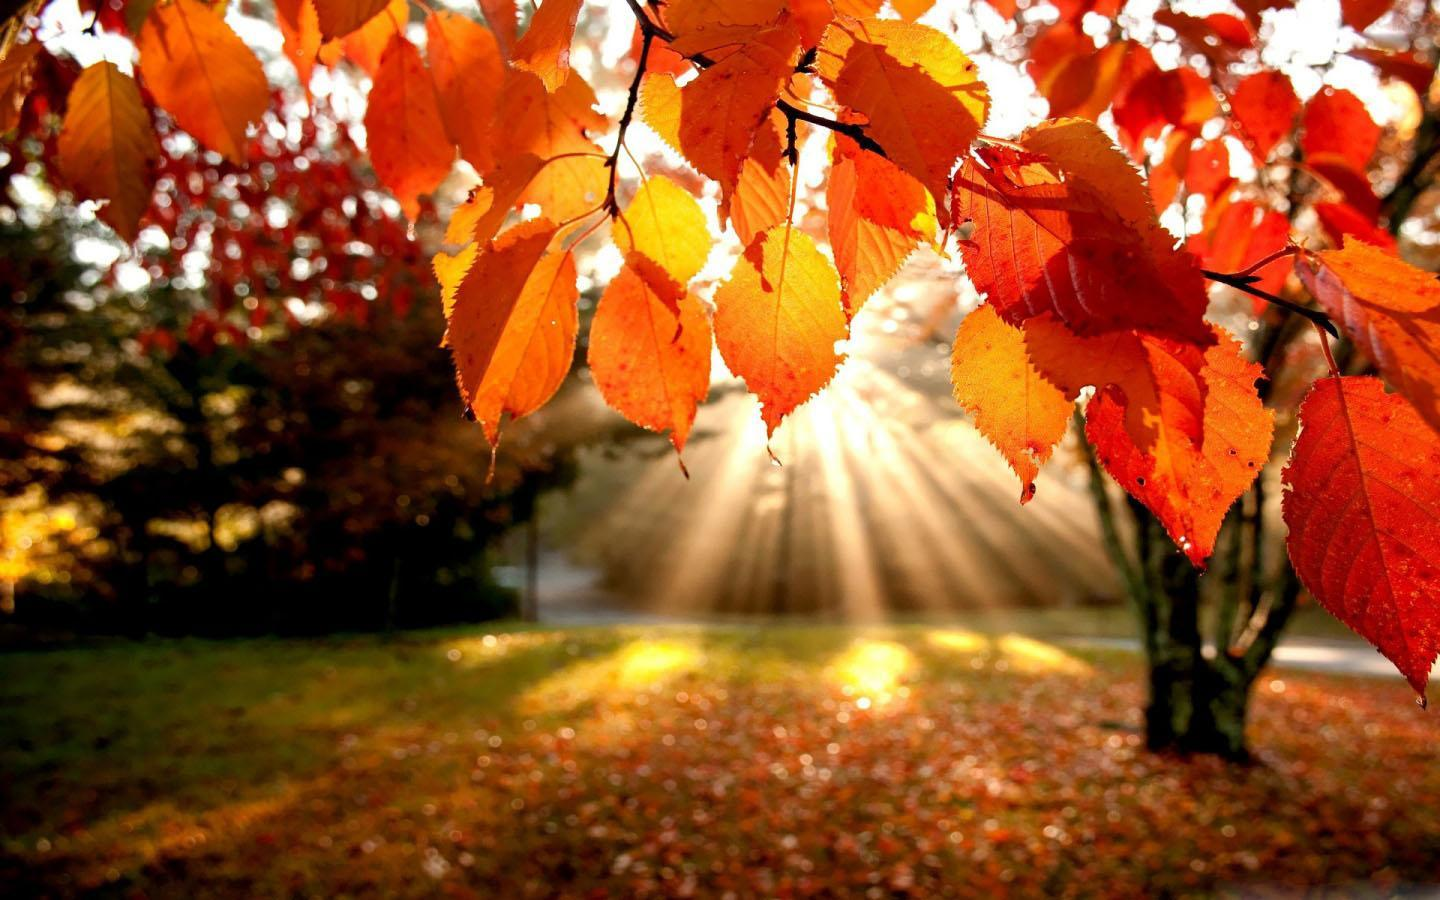 Romantic Autumn Wallpapers For Android Apk Download